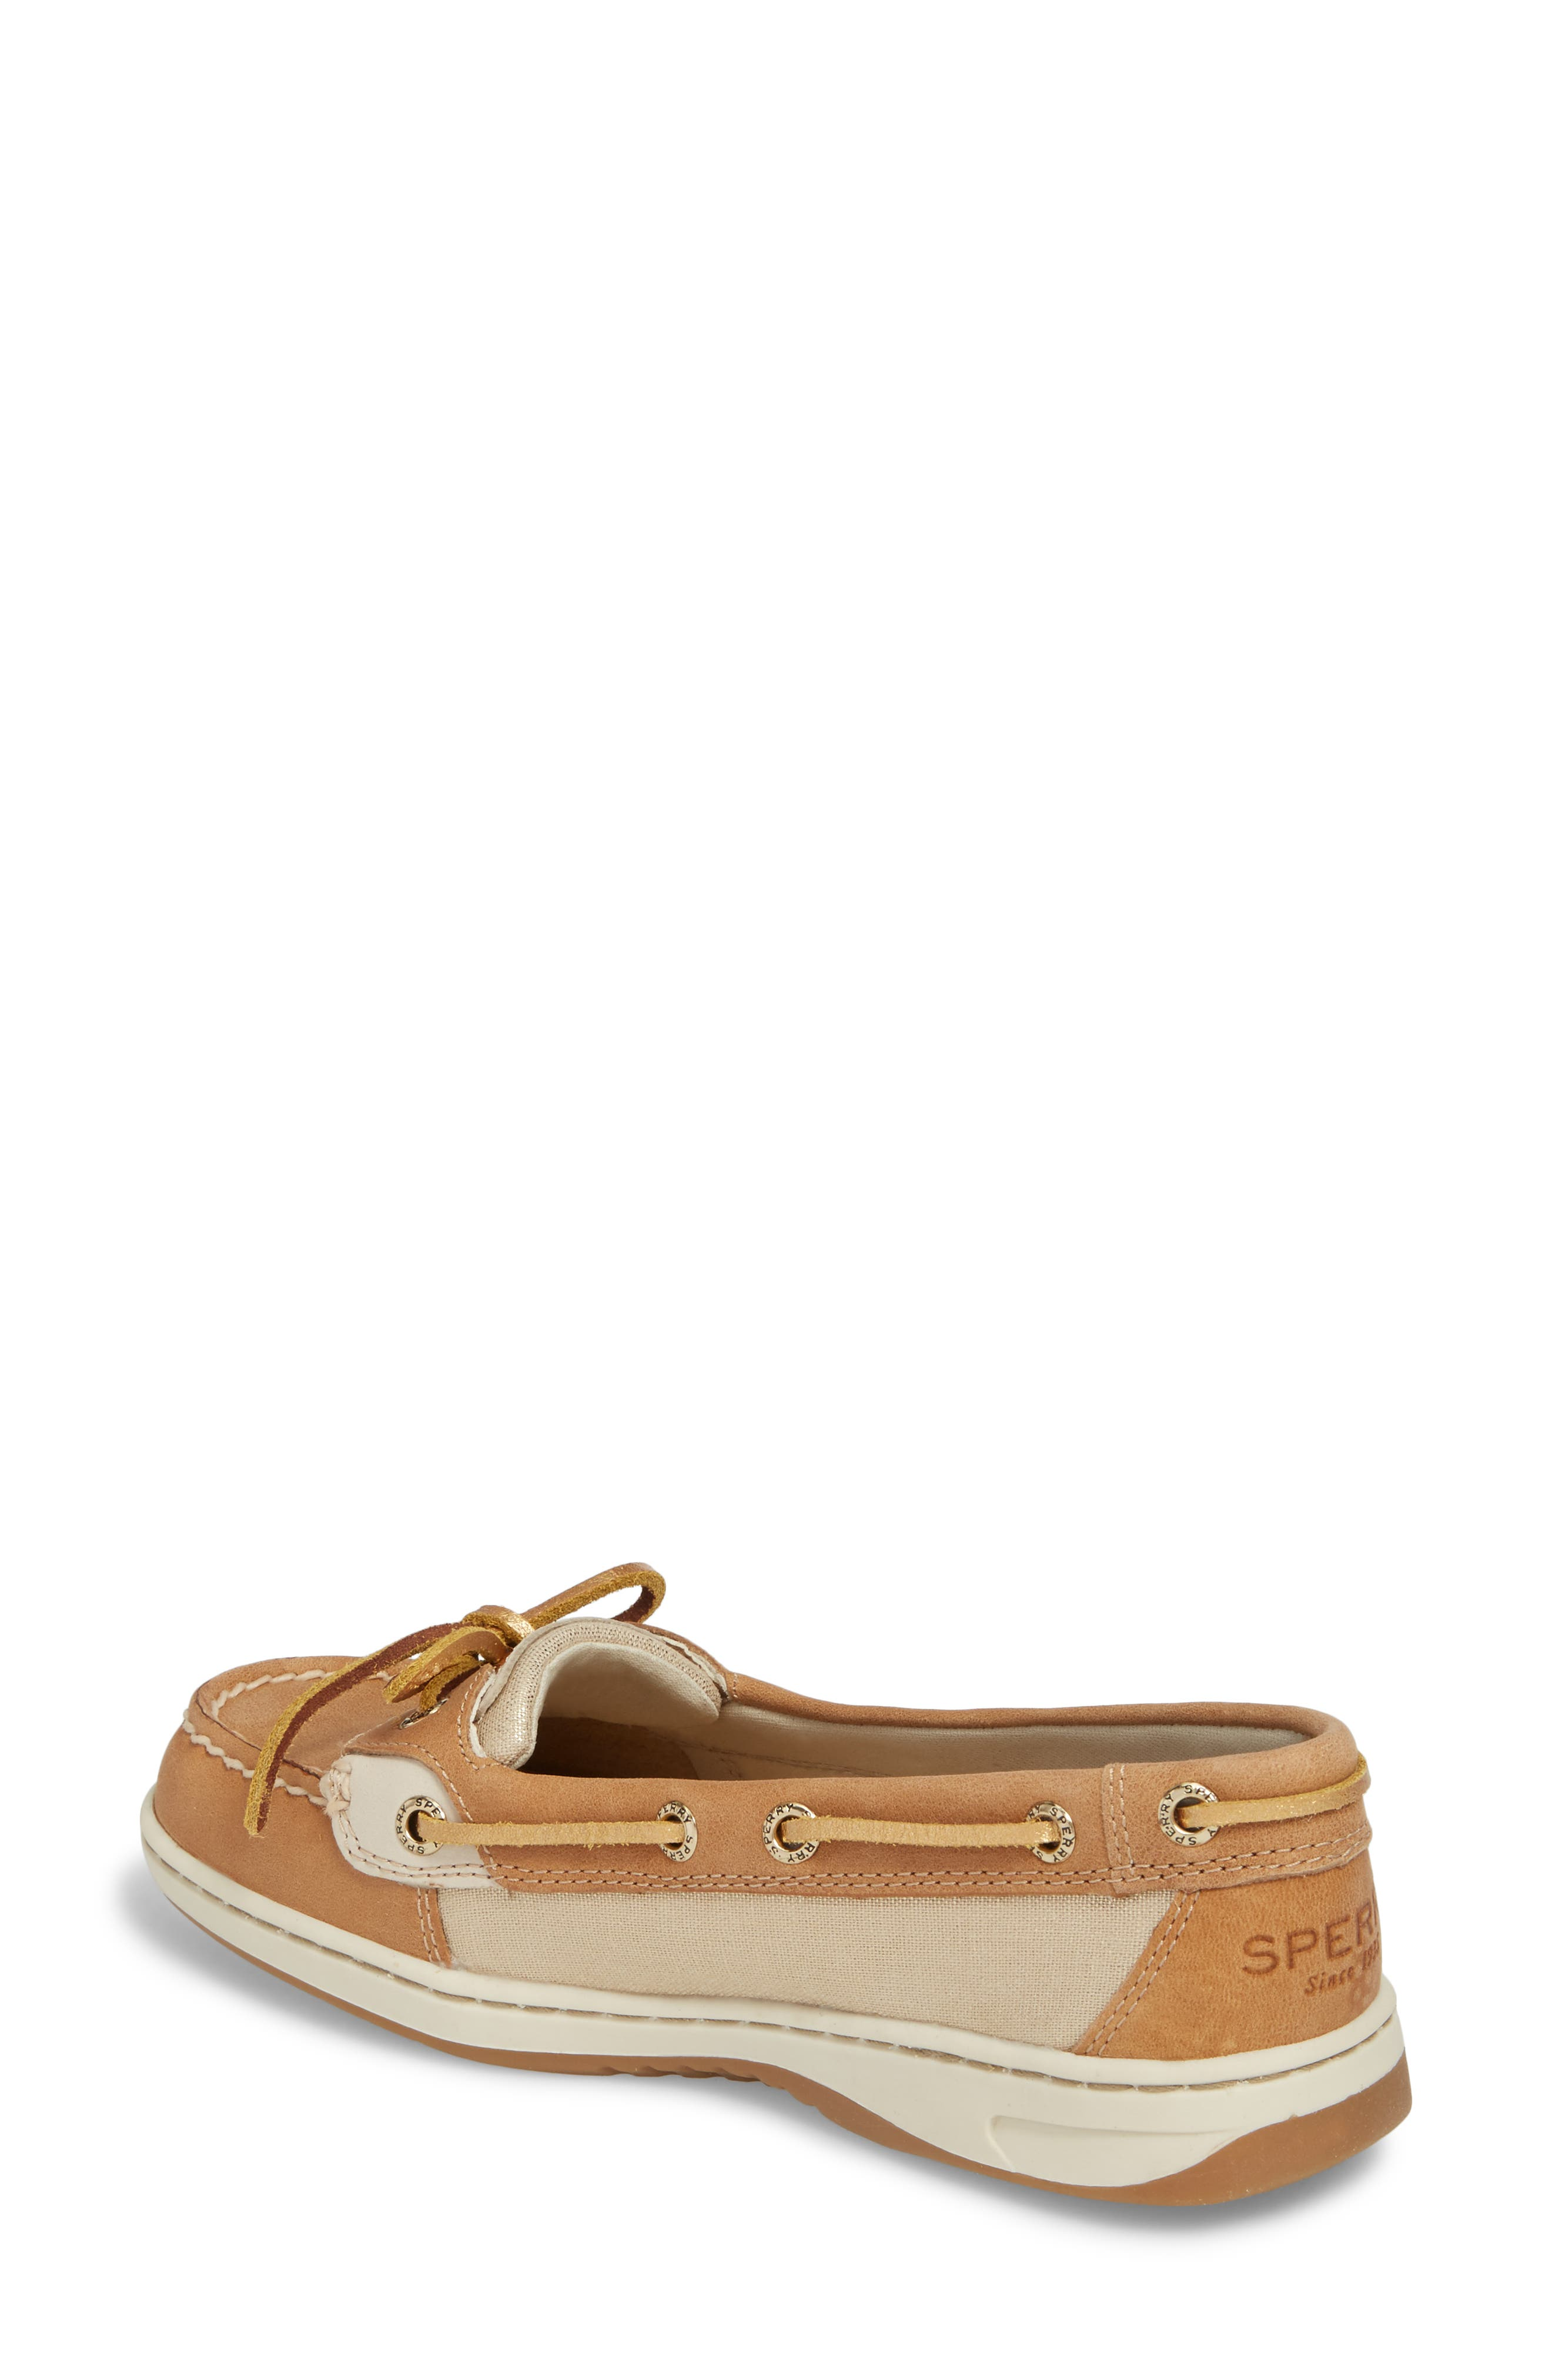 'Angelfish' Boat Shoe,                             Alternate thumbnail 3, color,                             LINEN METALLIC LEATHER